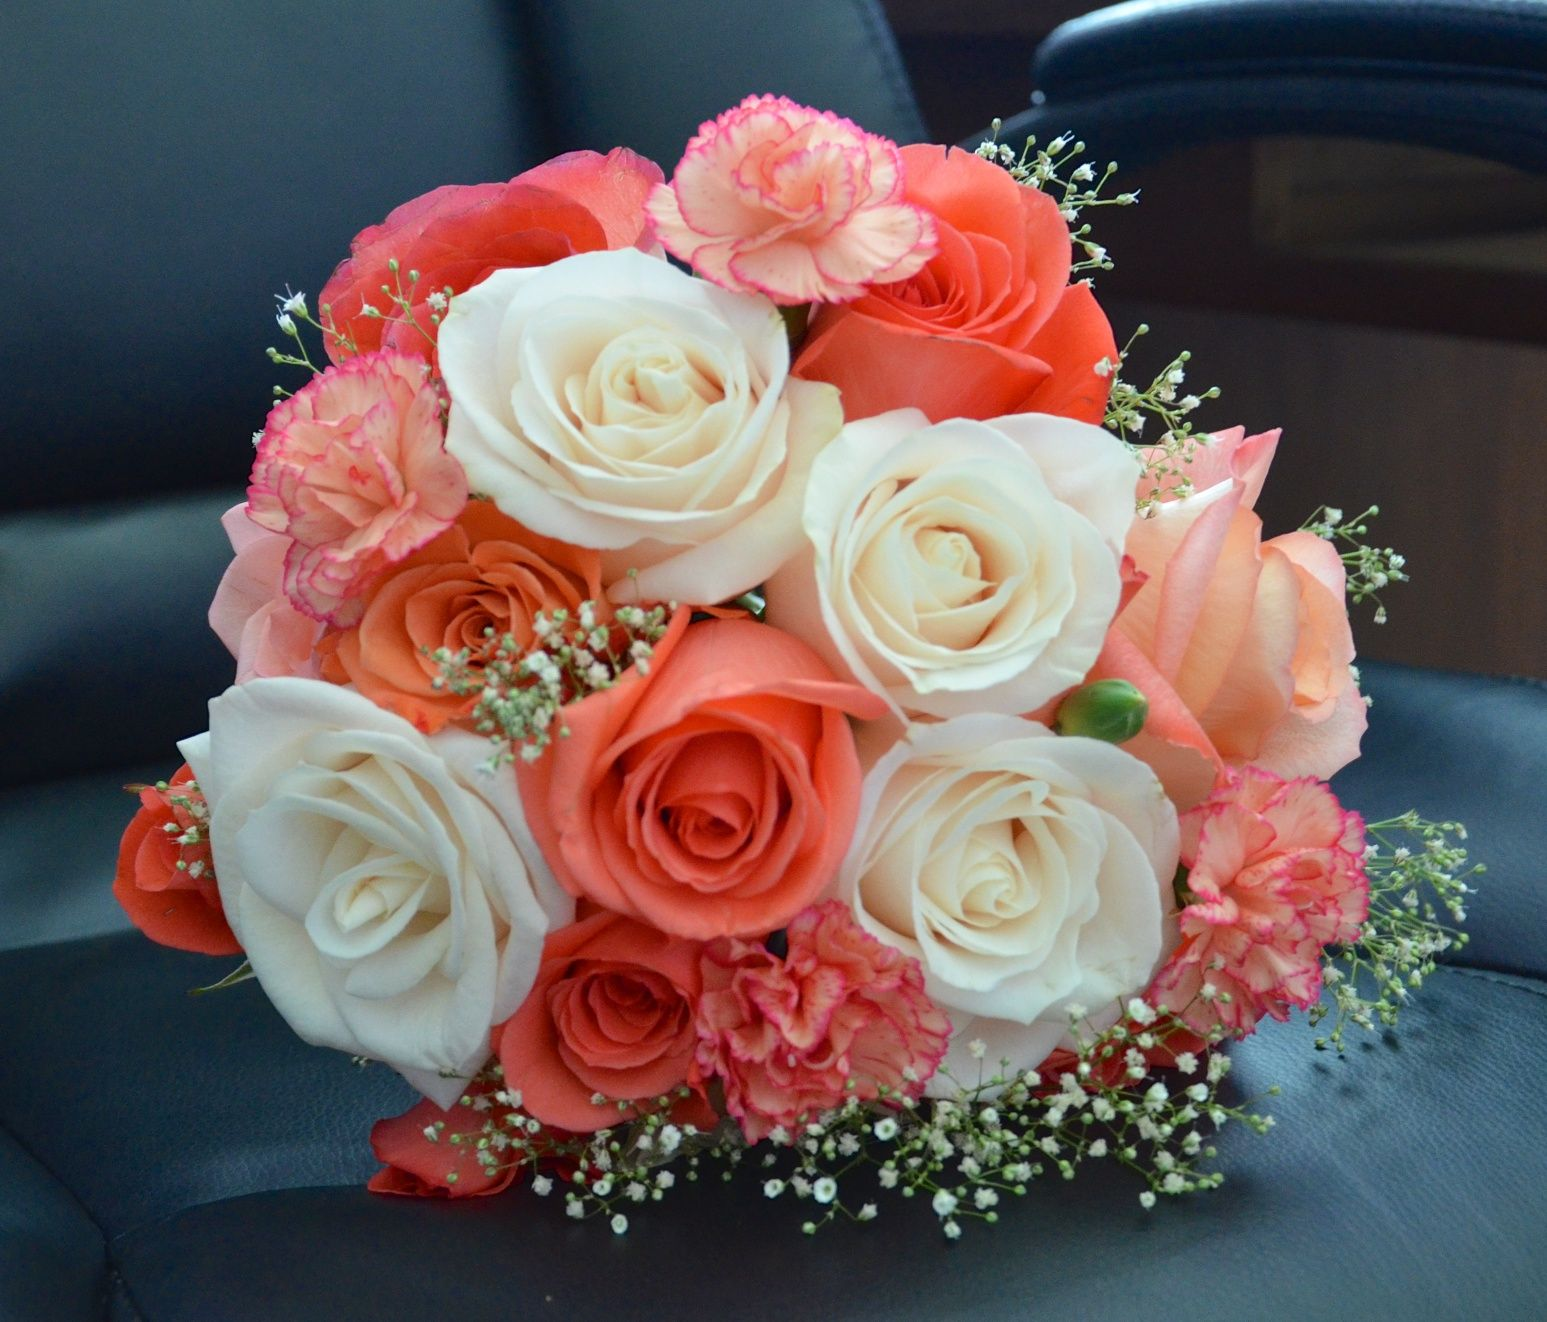 rose bridal bouquet in coral pinks and ivory by reynolds treasures